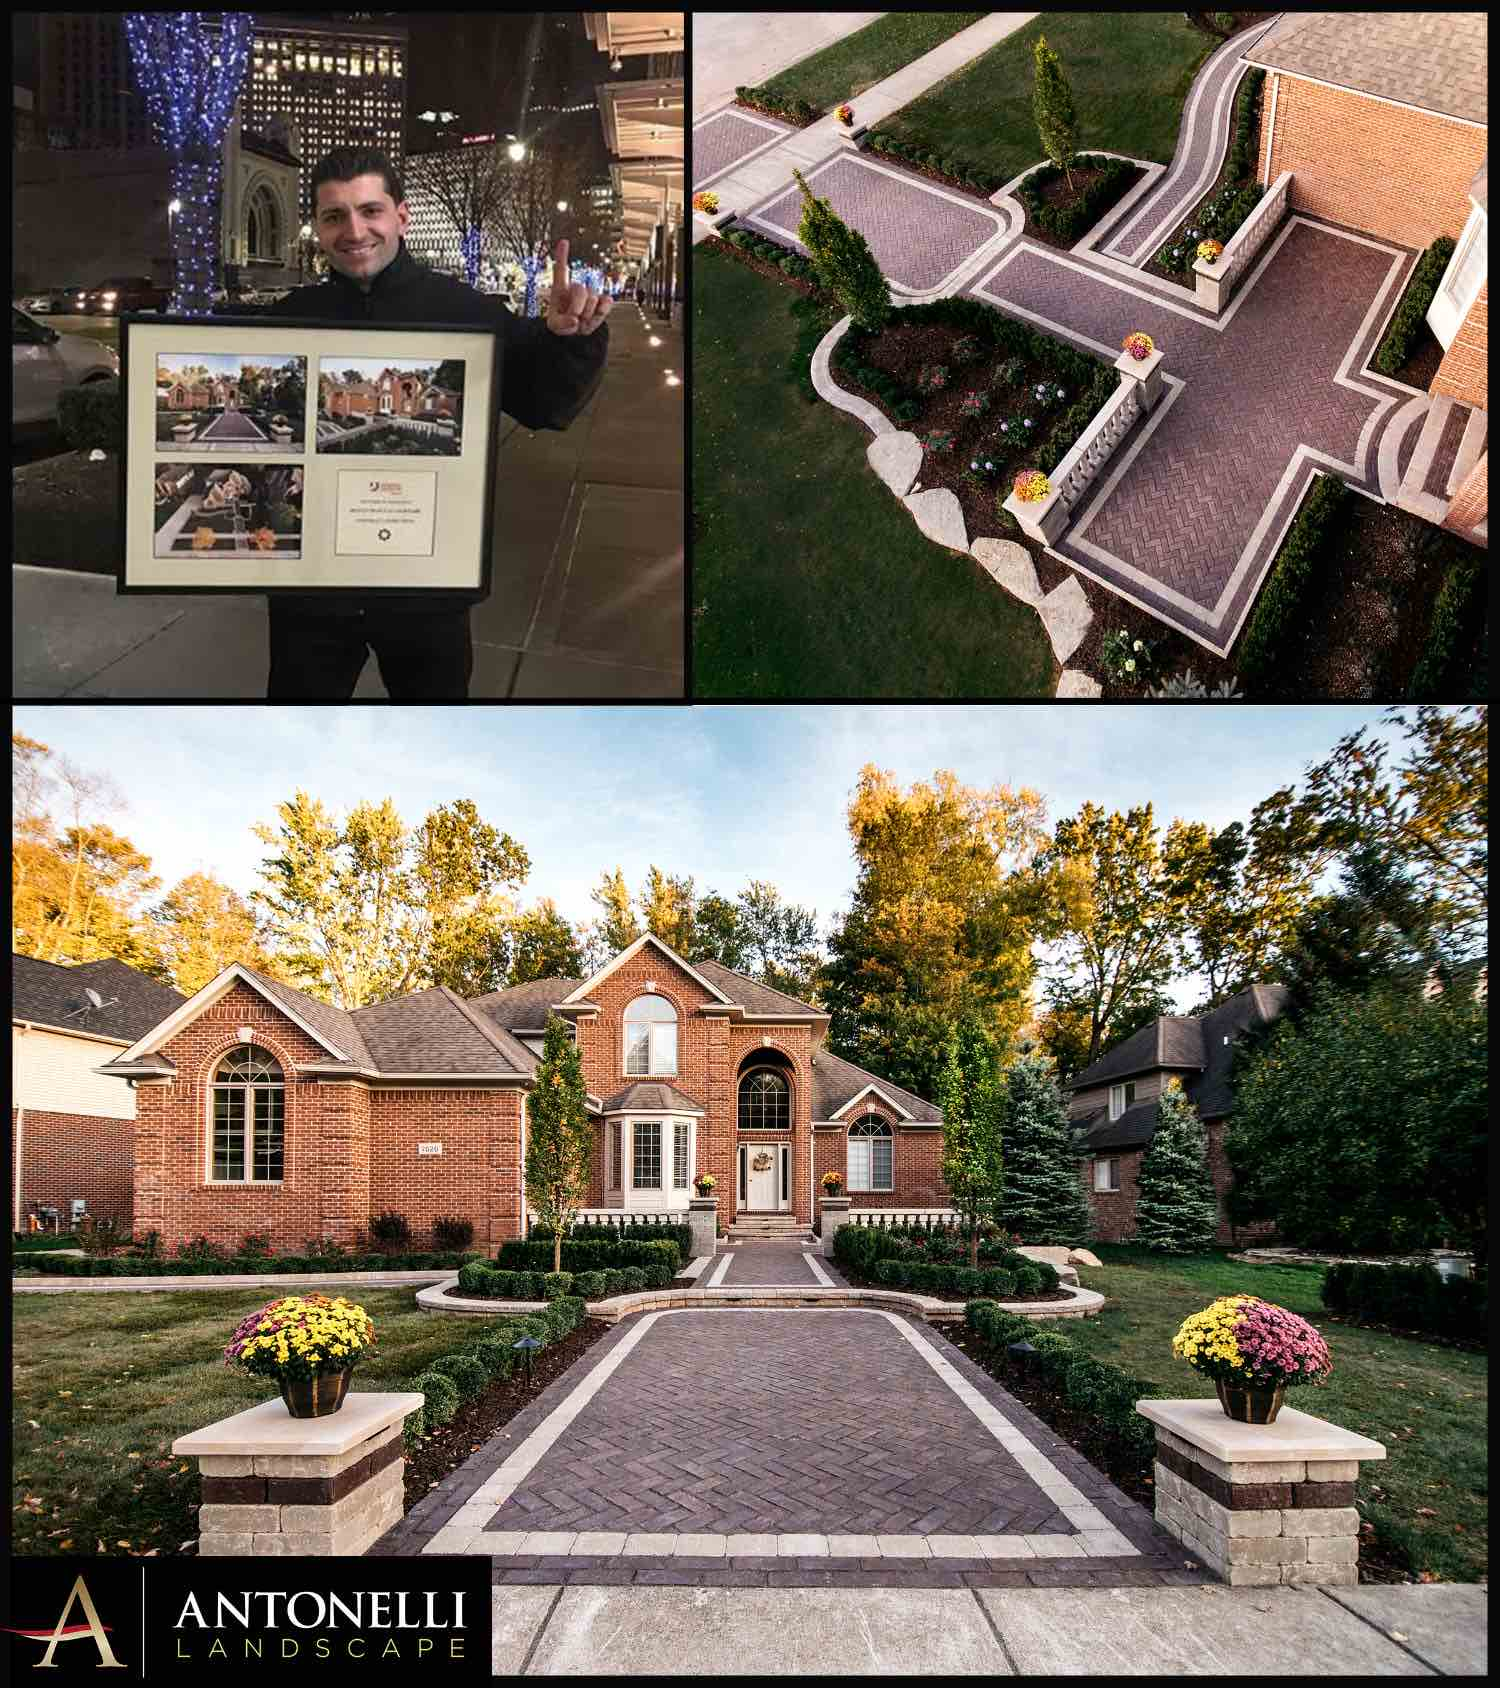 Unilock 2018 Best Entrance - Shelby Township